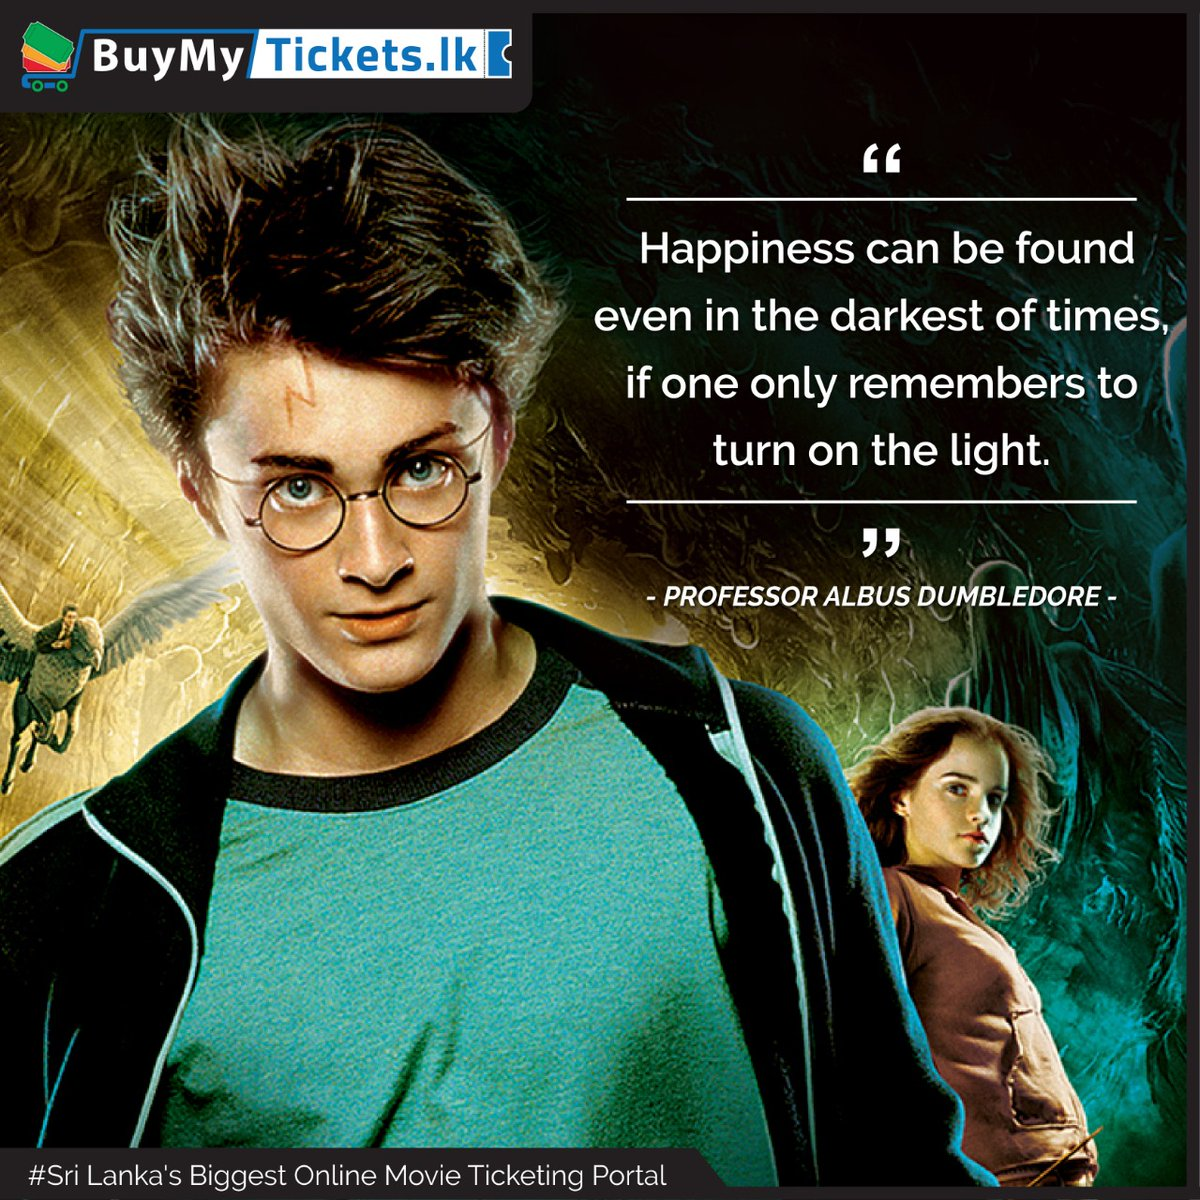 It can be difficult to try to see the lighter, more positive side of a dark situation, but it's important to try to look for it anyway. Your happiness depends on it.  #BuyMyTickets #harrypotter #movielines pic.twitter.com/aNDHKowupr